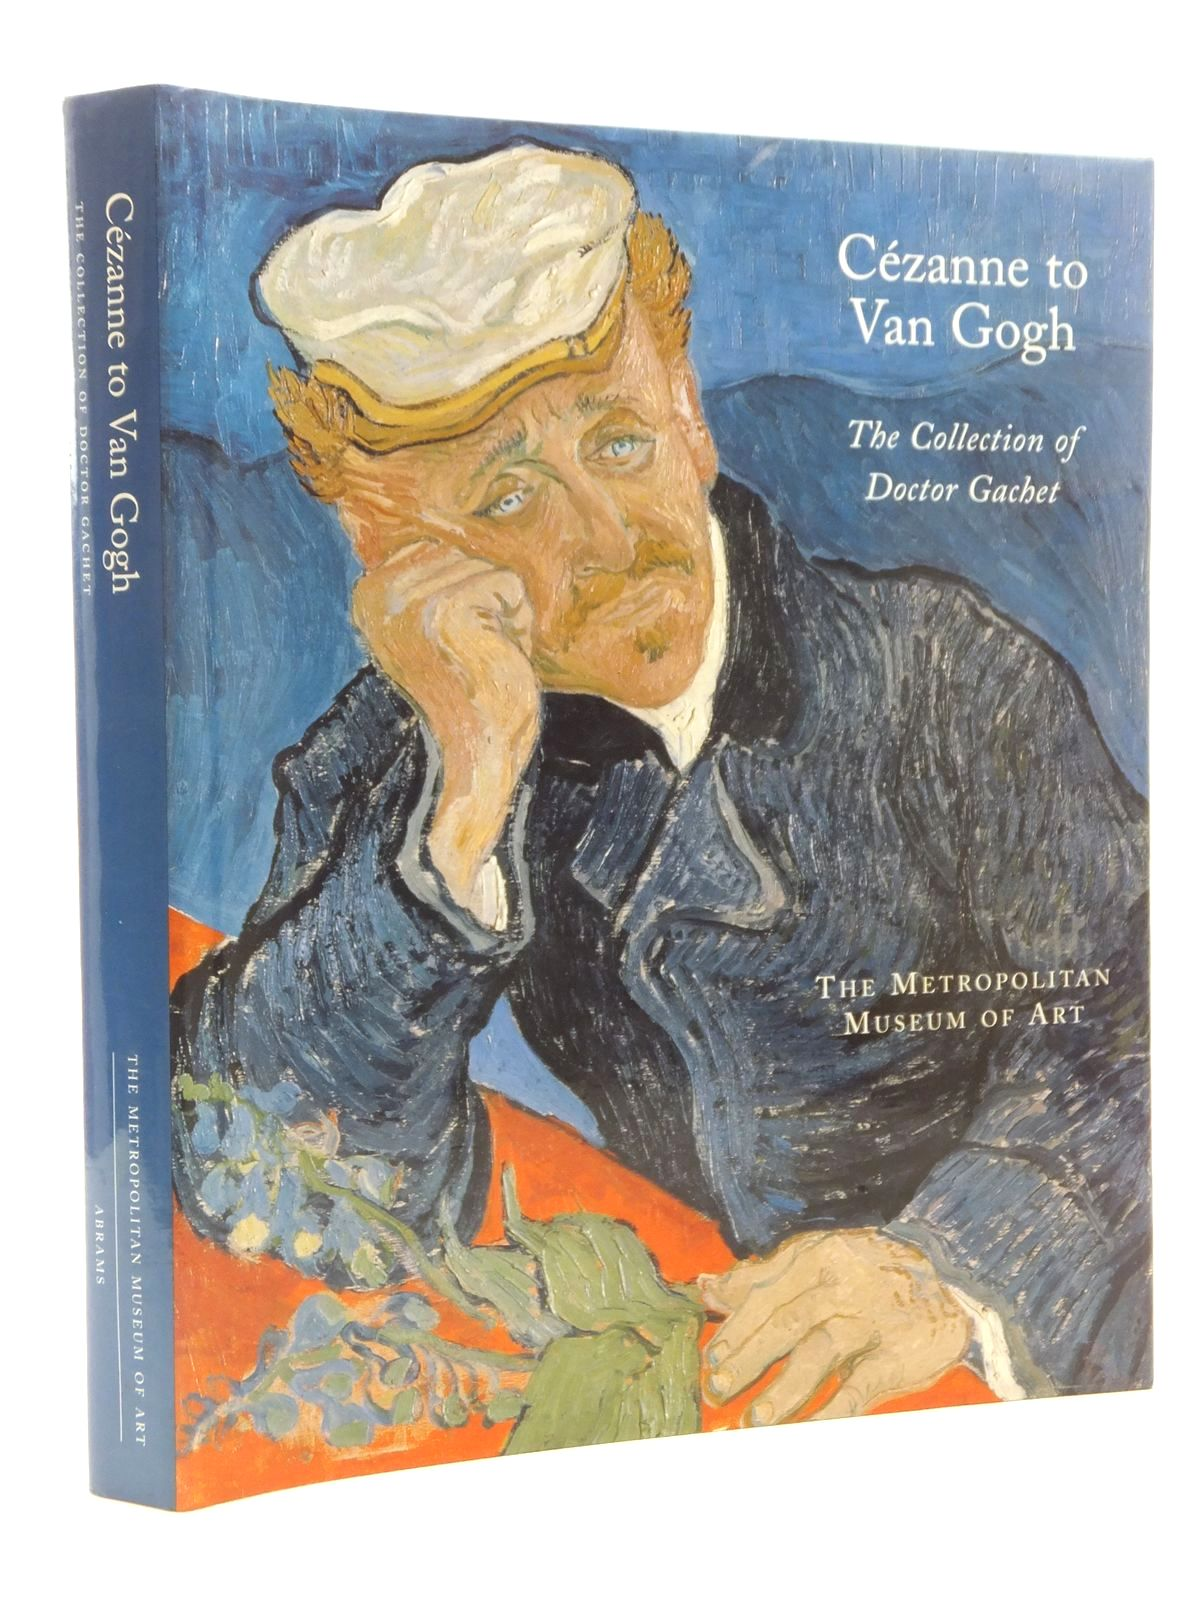 Photo of CEZANNE TO VAN GOGH: THE COLLECTION OF DOCTOR GACHET written by Distel, Anne<br />Stein, Susan Alyson illustrated by Cezanne, Paul<br />Monet, Claude<br />Van Gogh, Vincent published by The Metropolitan Museum of Art (STOCK CODE: 1815017)  for sale by Stella & Rose's Books